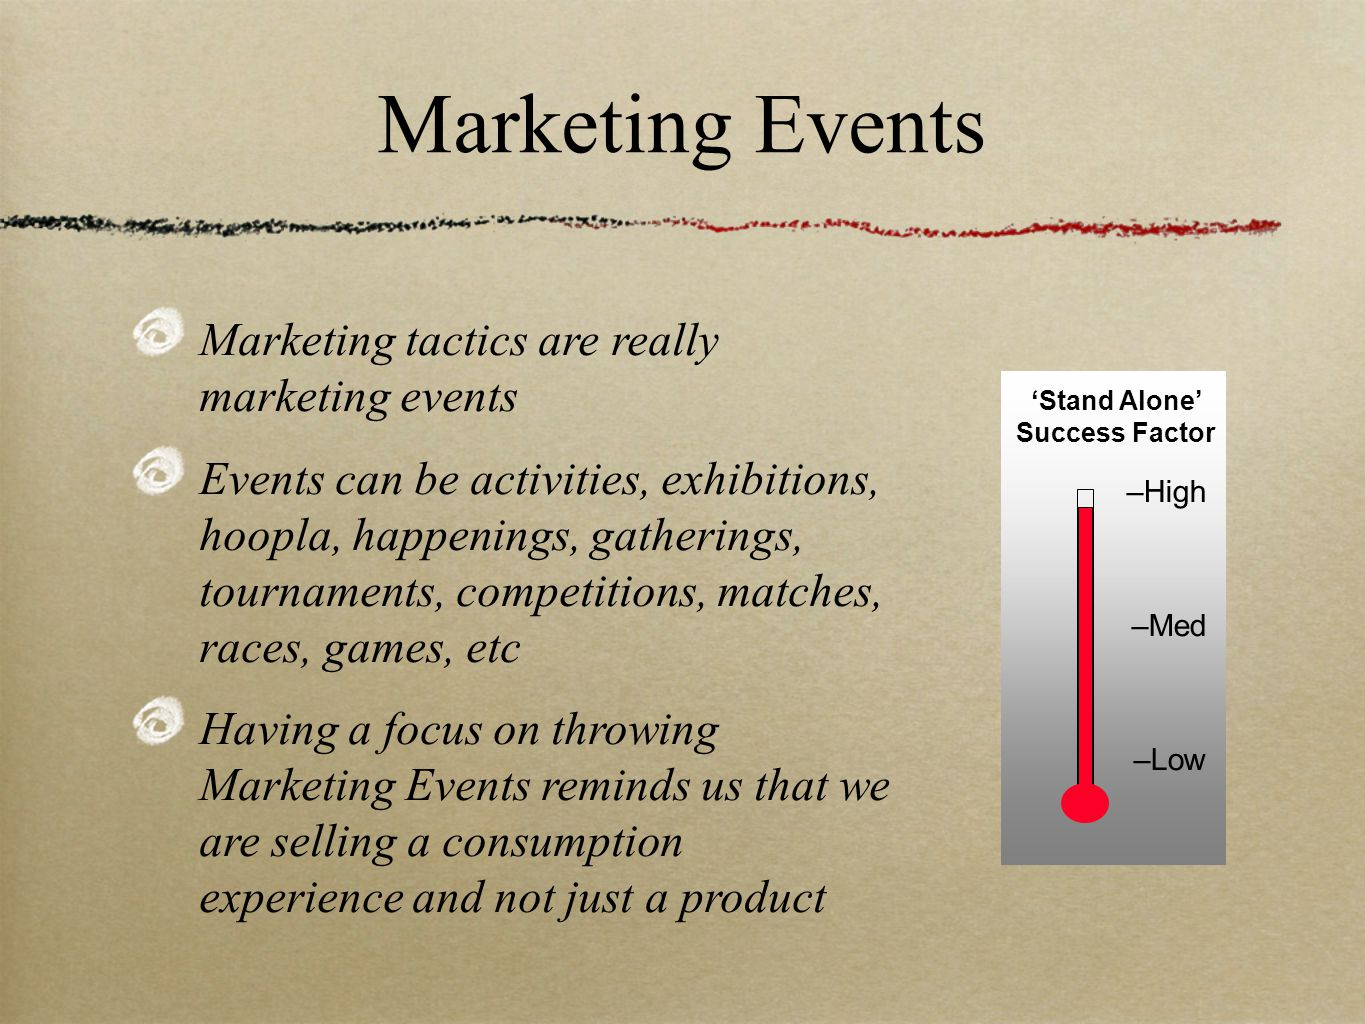 –High –Med –Low Marketing Events Marketing tactics are really marketing events Events can be activities, exhibitions, hoopla, happenings, gatherings, tournaments, competitions, matches, races, games, etc Having a focus on throwing Marketing Events reminds us that we are selling a consumption experience and not just a product 'Stand Alone' Success Factor